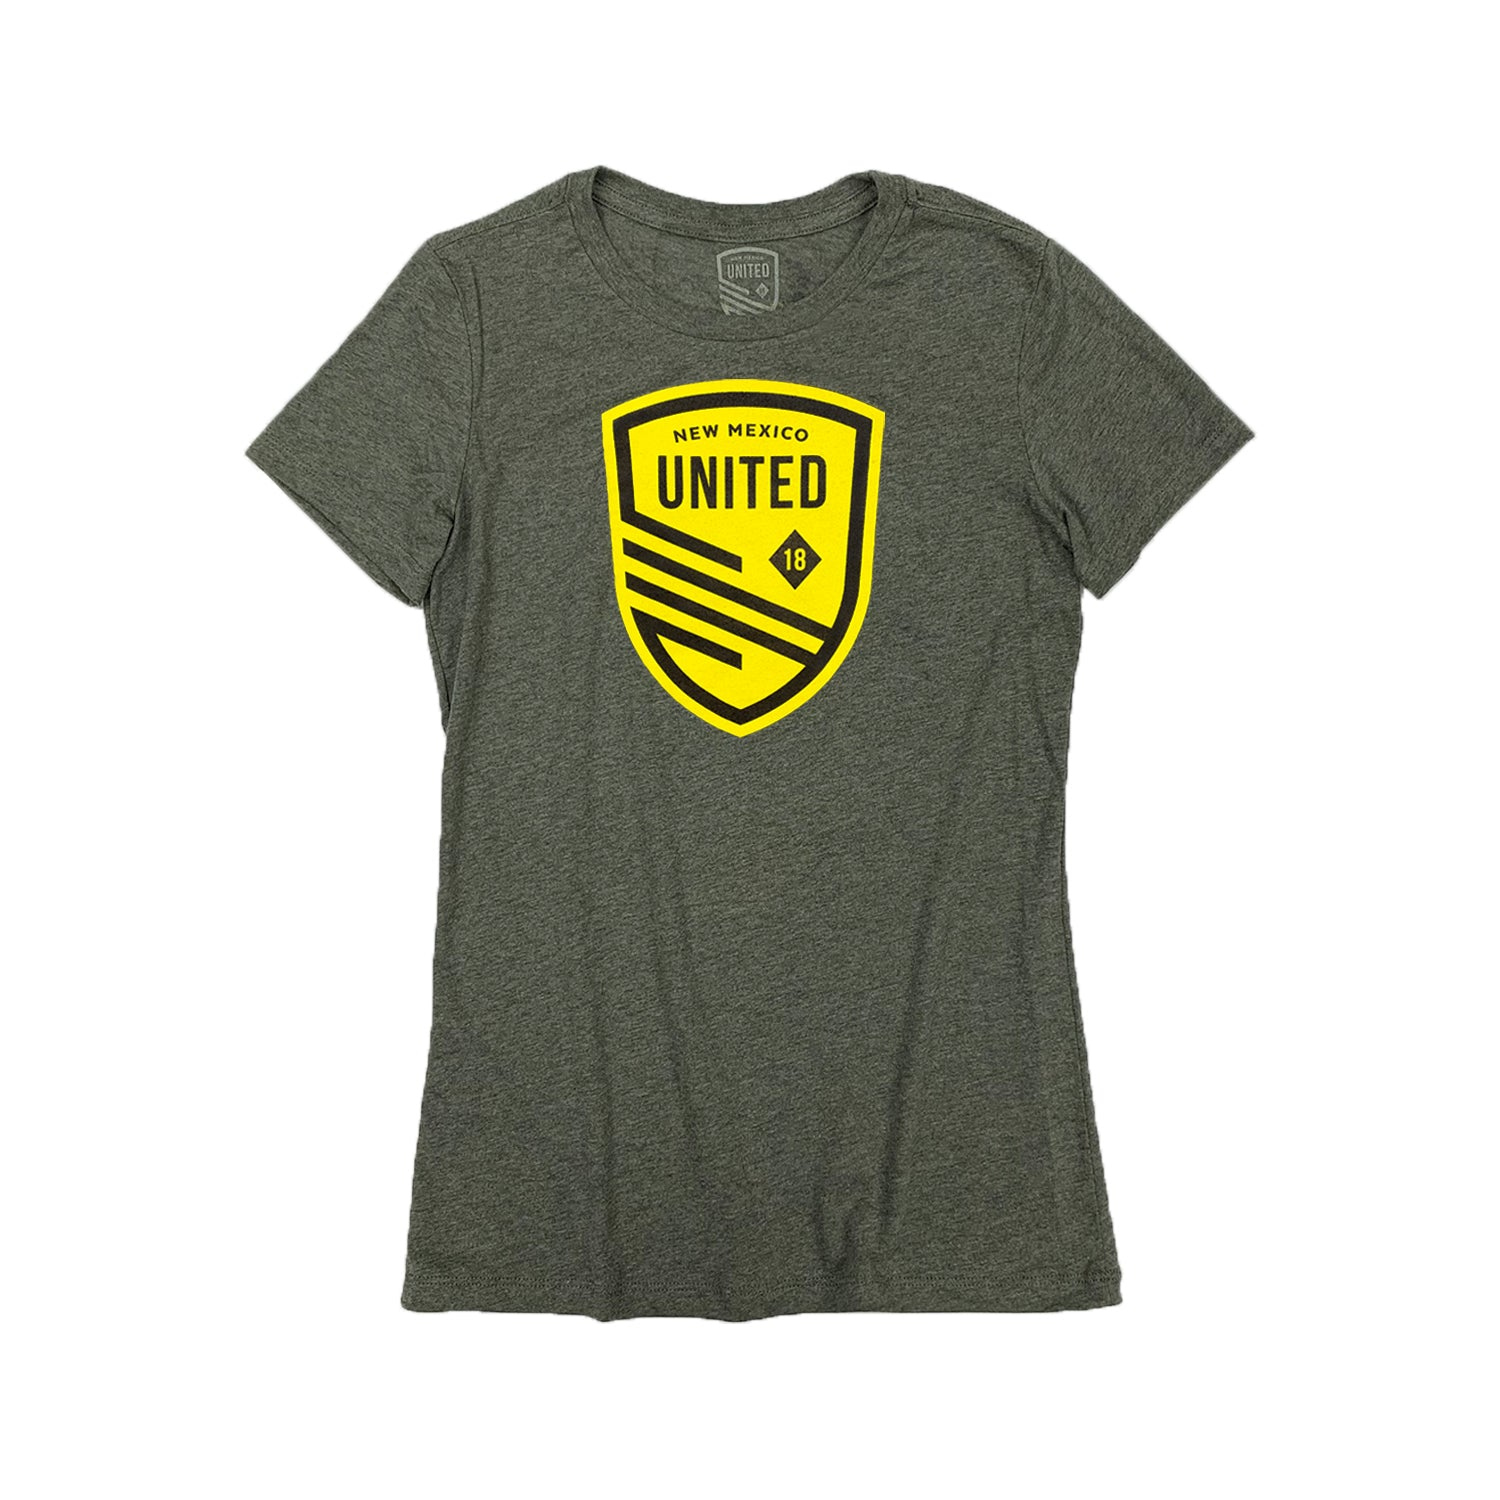 New Mexico United Women's Basic Shield Crew Neck